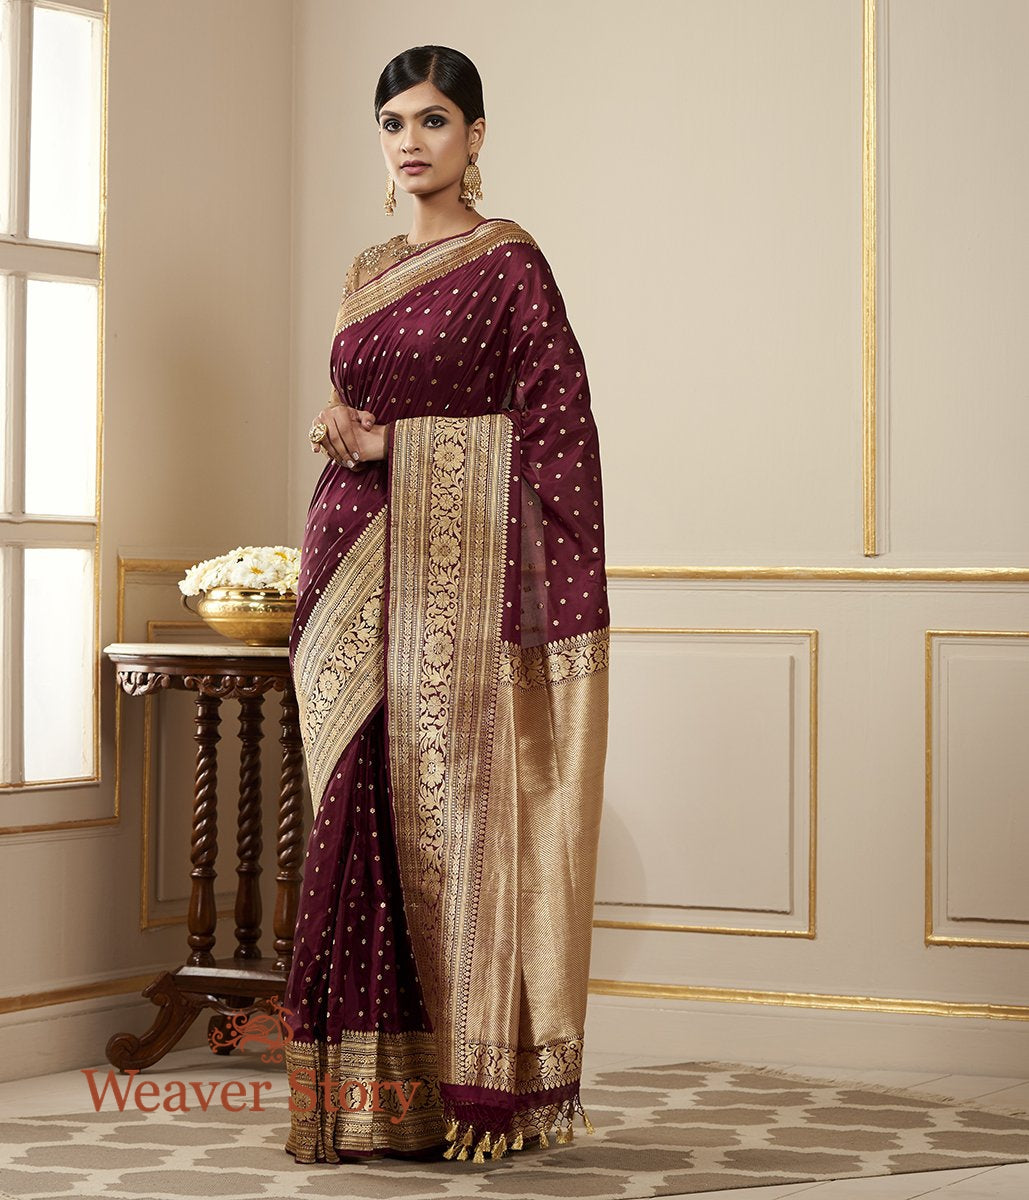 Handwoven Wine Zari Booti Saree with Kadhwa Border